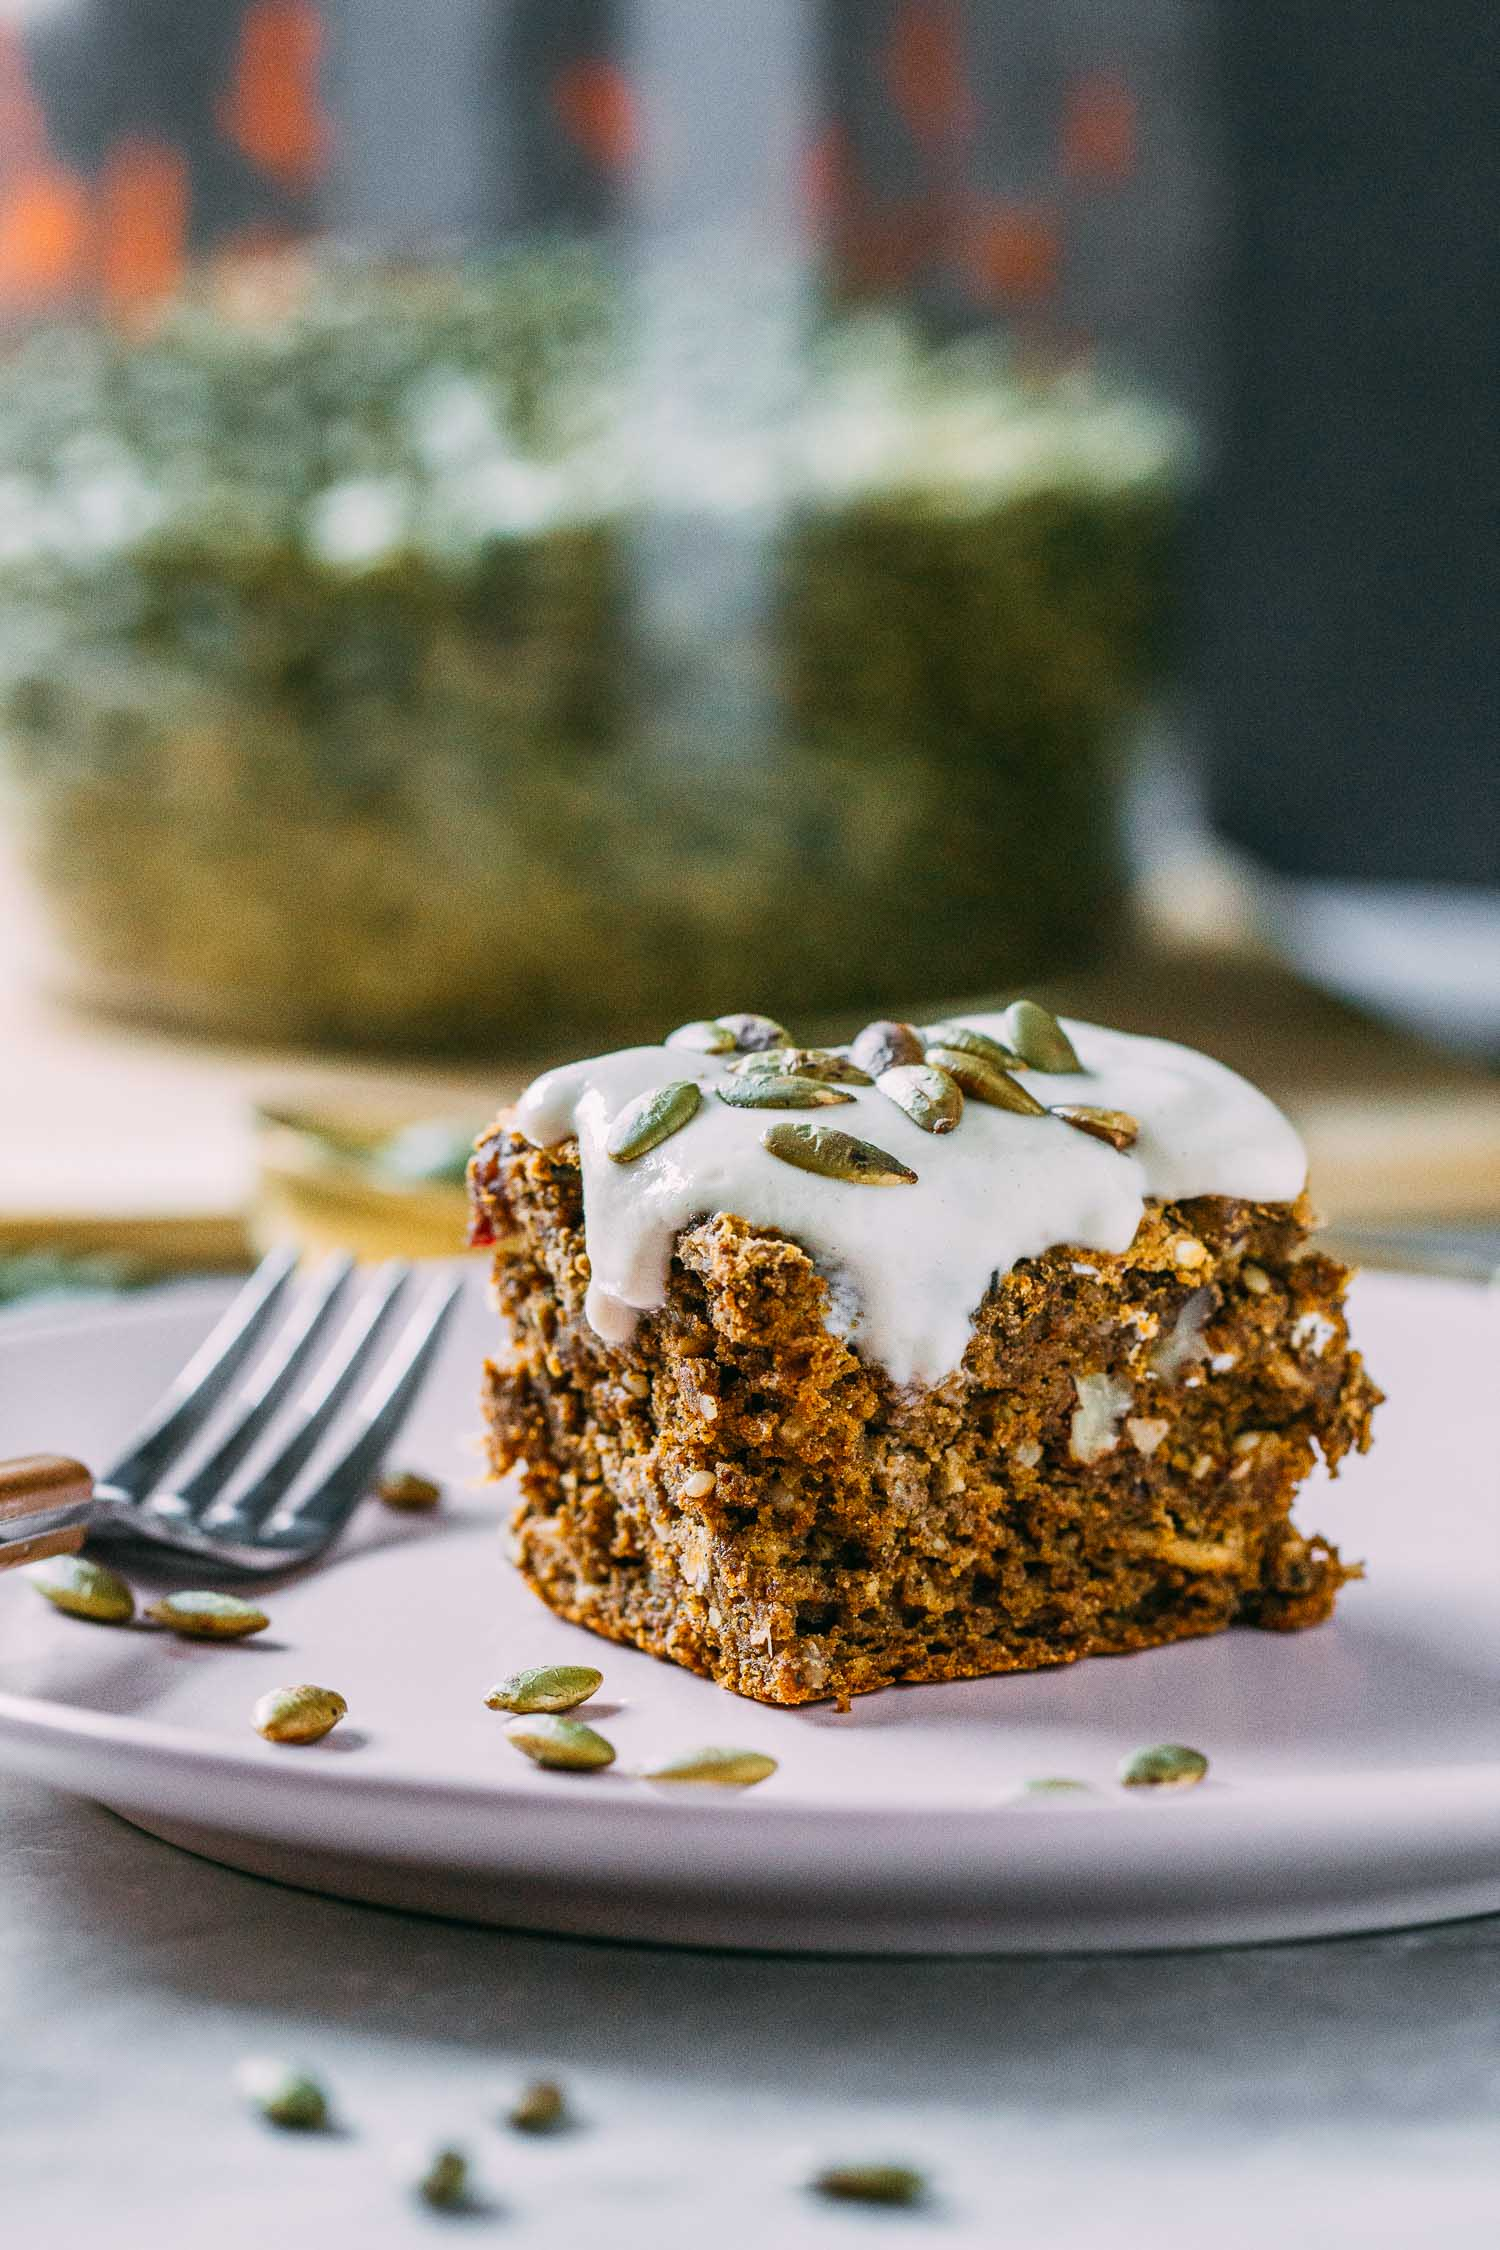 Pumpkin Cinnamon Spice Cake with Cashew Cream Cheese Glaze #pumpkin #cake #cinnamon #spice #cashew #cream #glaze #dairy-free #gluten-free #oil-free #refined sugar-free #plant-based #vegetarian #dessert #breakfast #fall #halloween #harvest #Thanksgiving #Christmas #holidays #recipe #easy #wfpb #recipes #wfpbno #pecans #pumpkin seeds